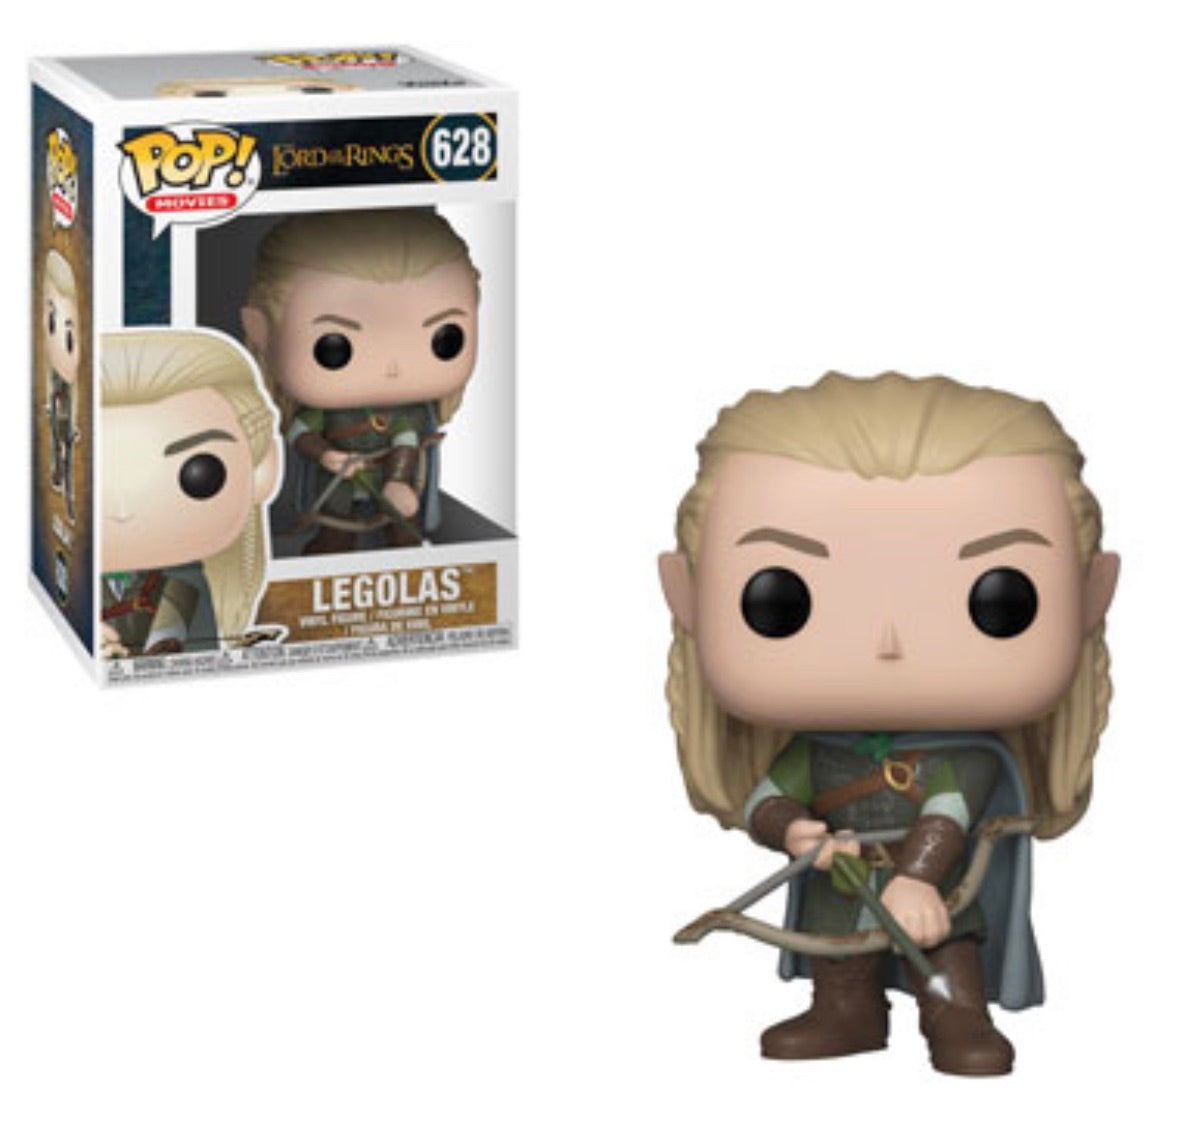 Pop! Movies: Lord of the Rings Legolas